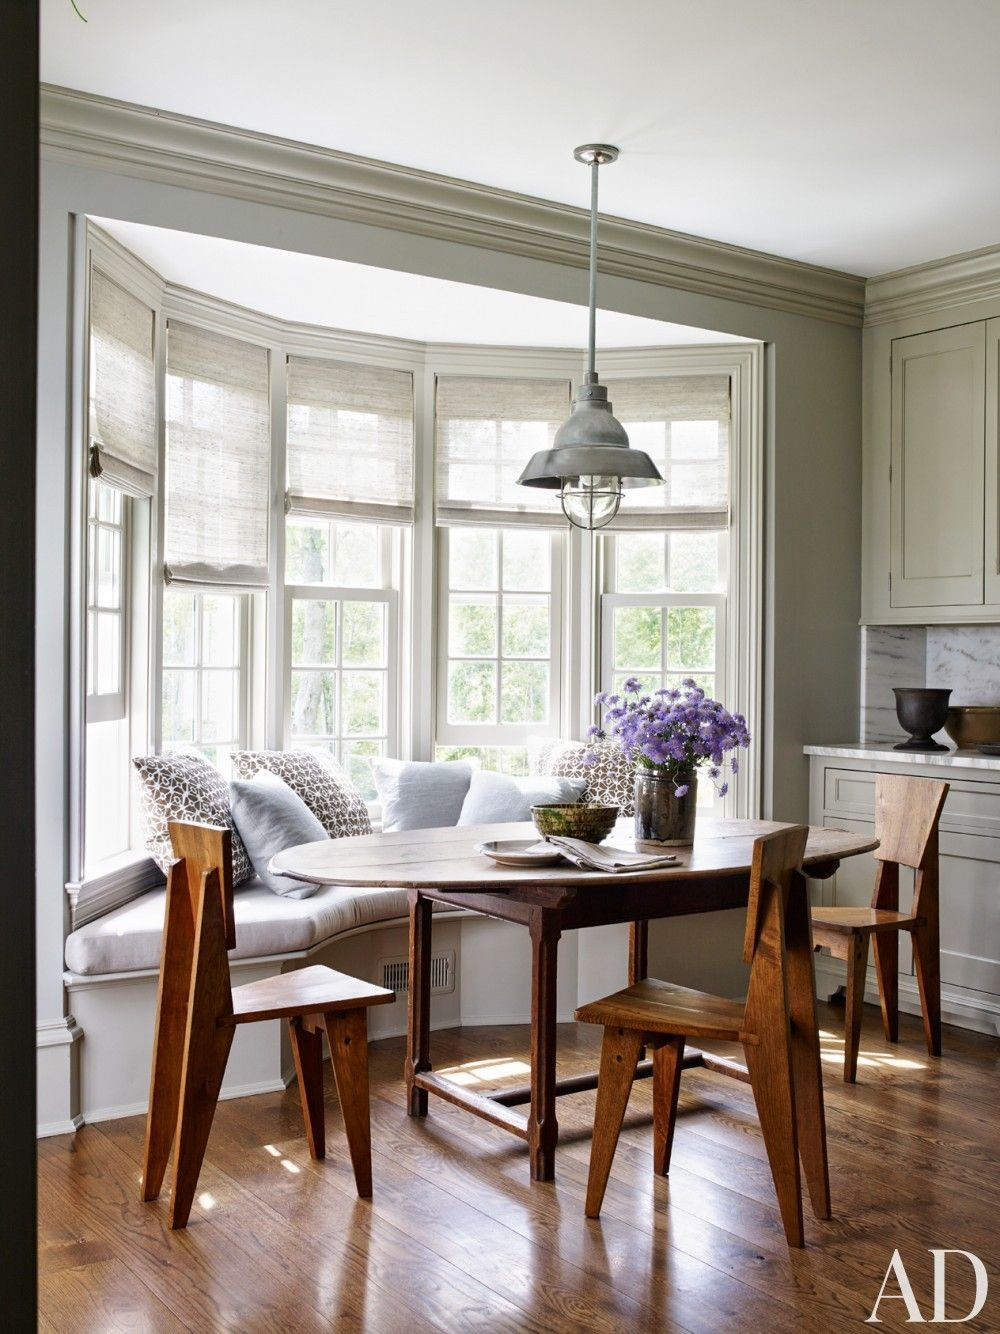 kitchen bay window seat modern more ideas below diy bay windows exterior ideas nook seat and plants dining shutters trim treatments kitchen 55 window blending functionality with modern interior